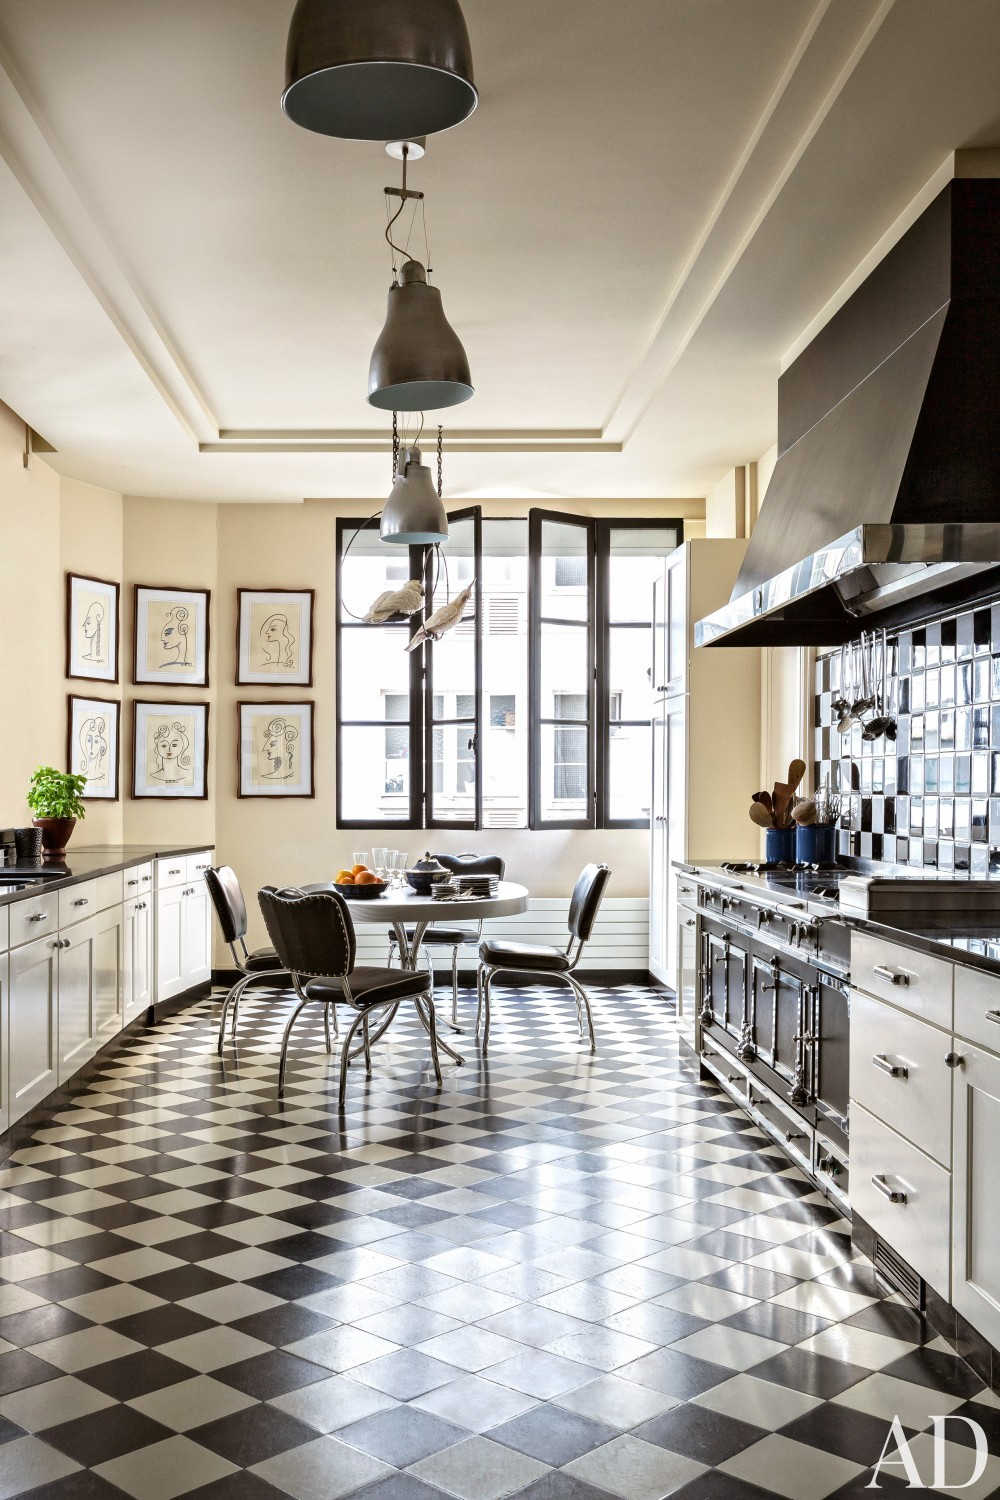 Exotic Kitchen by Linda Pinto in Paris, France